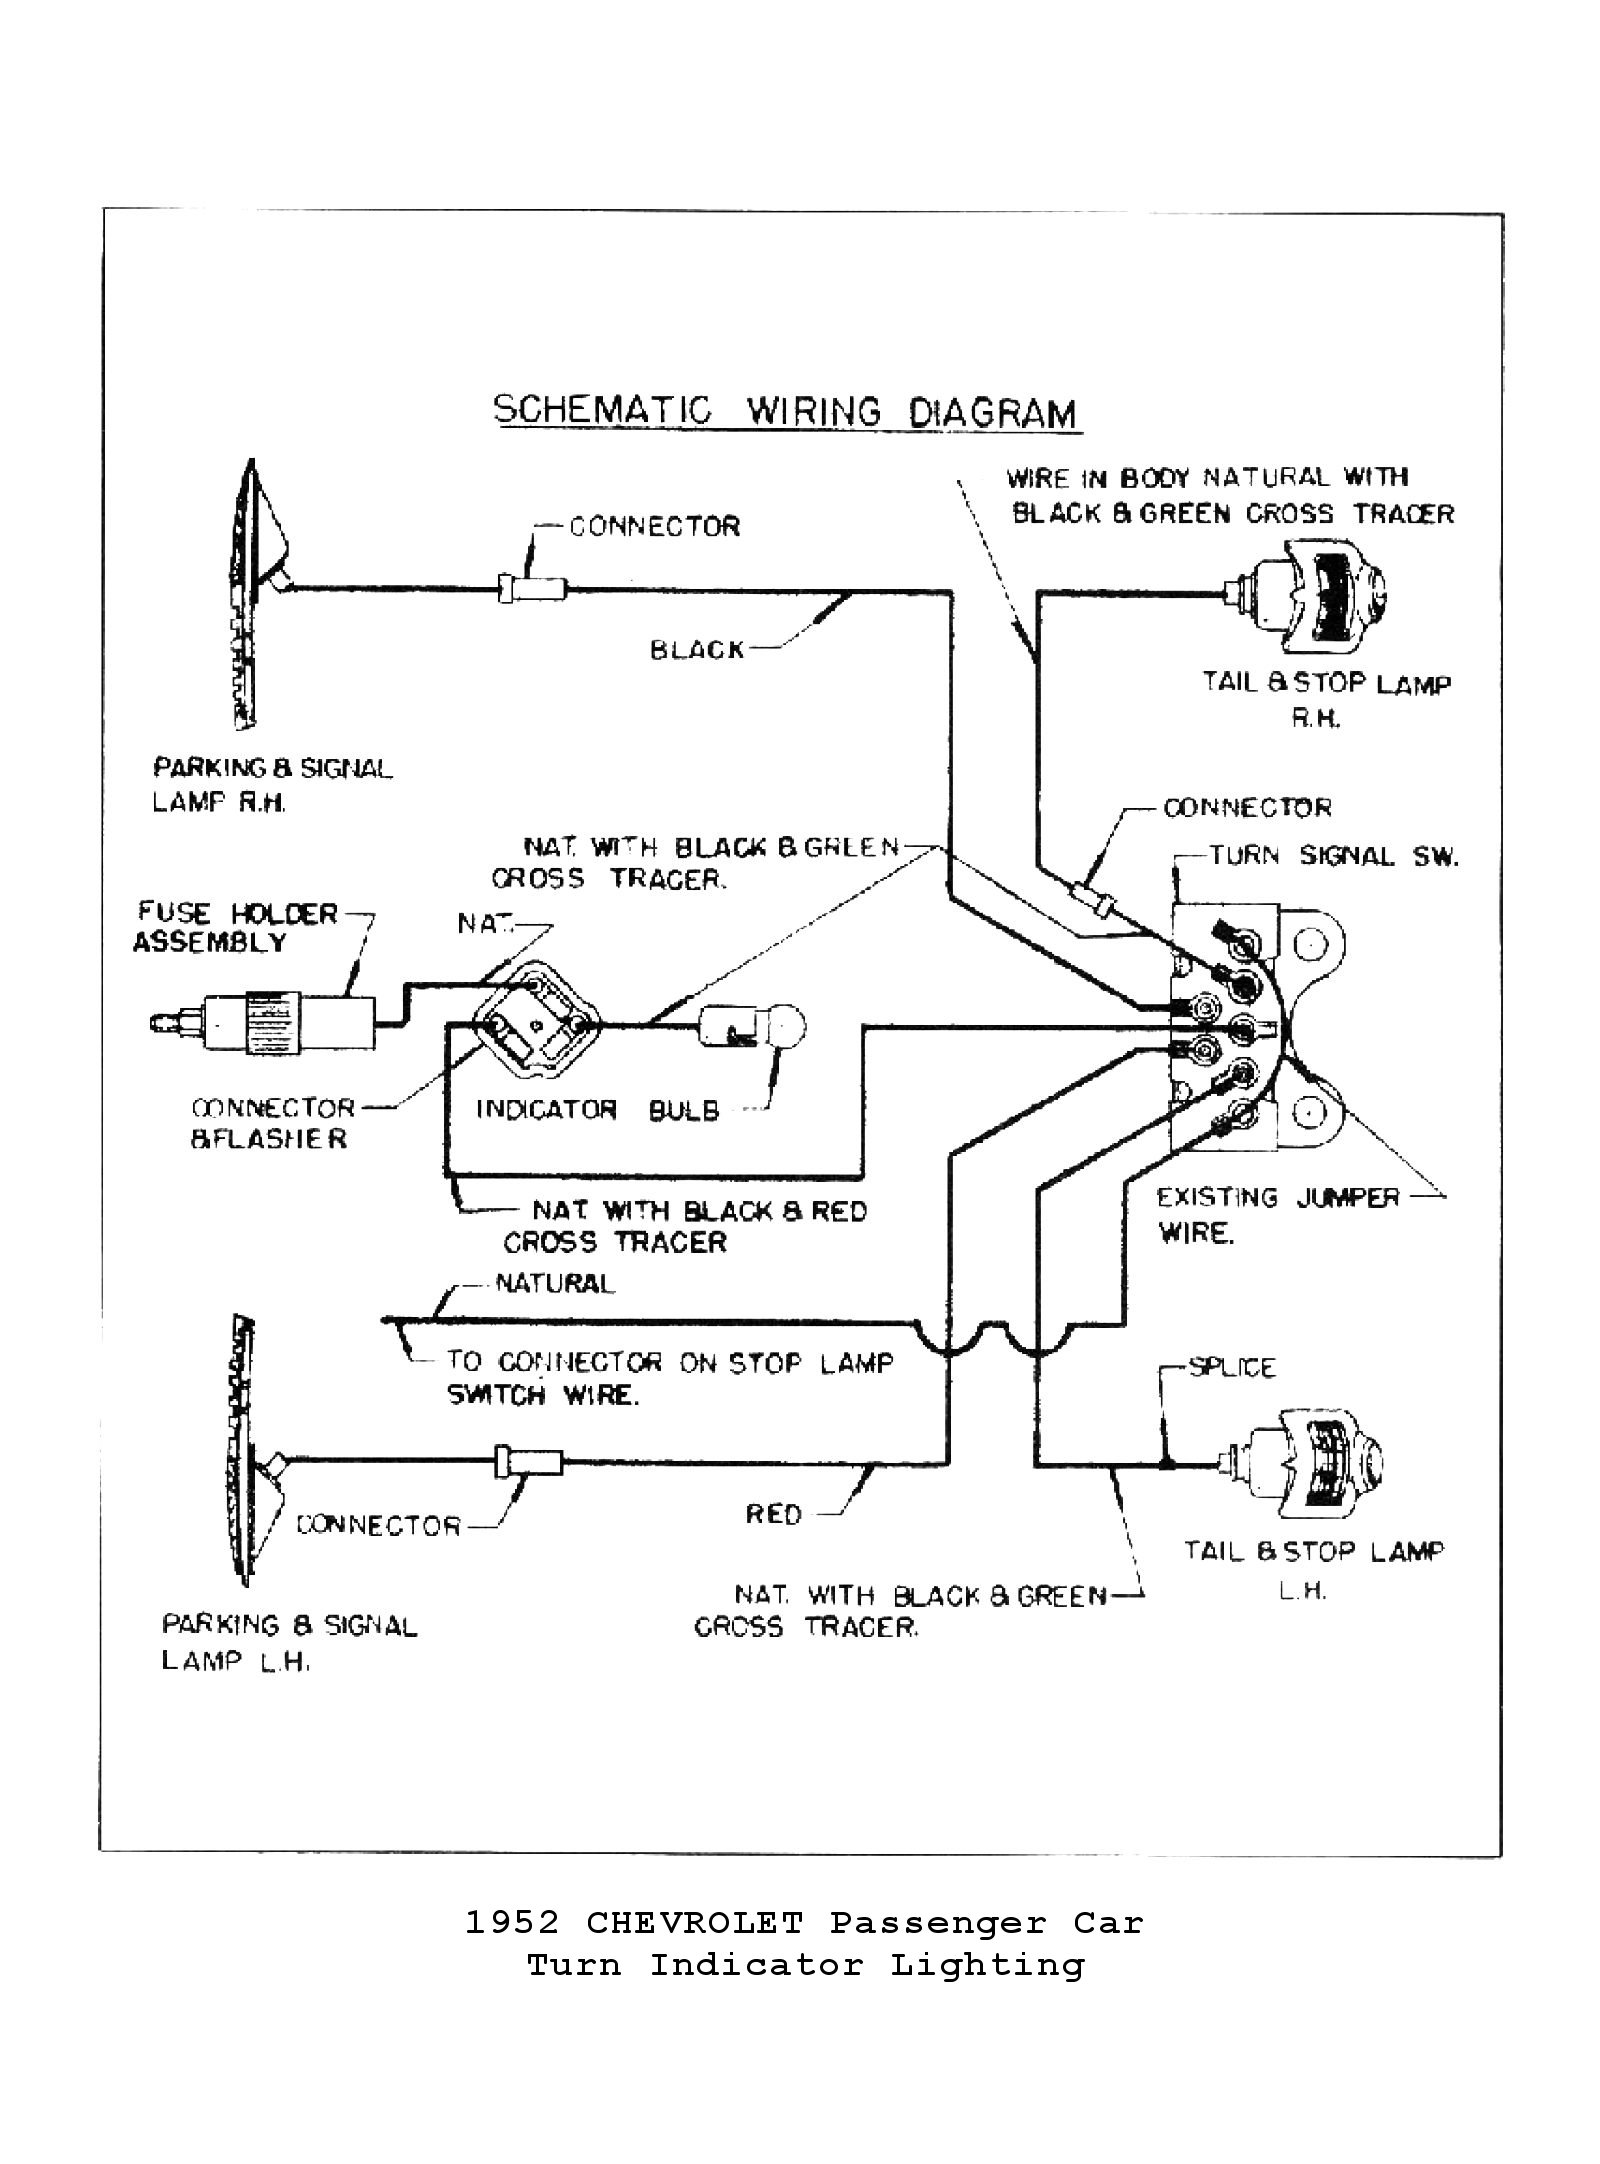 a 56 chevy headlight switch wiring best wiring library 69 Chevy Headlight Switch Wiring Diagram 1952 chevy headlight switch wiring diagram simple wiring diagrams rh 8 studio011 de 1950 gm headlight